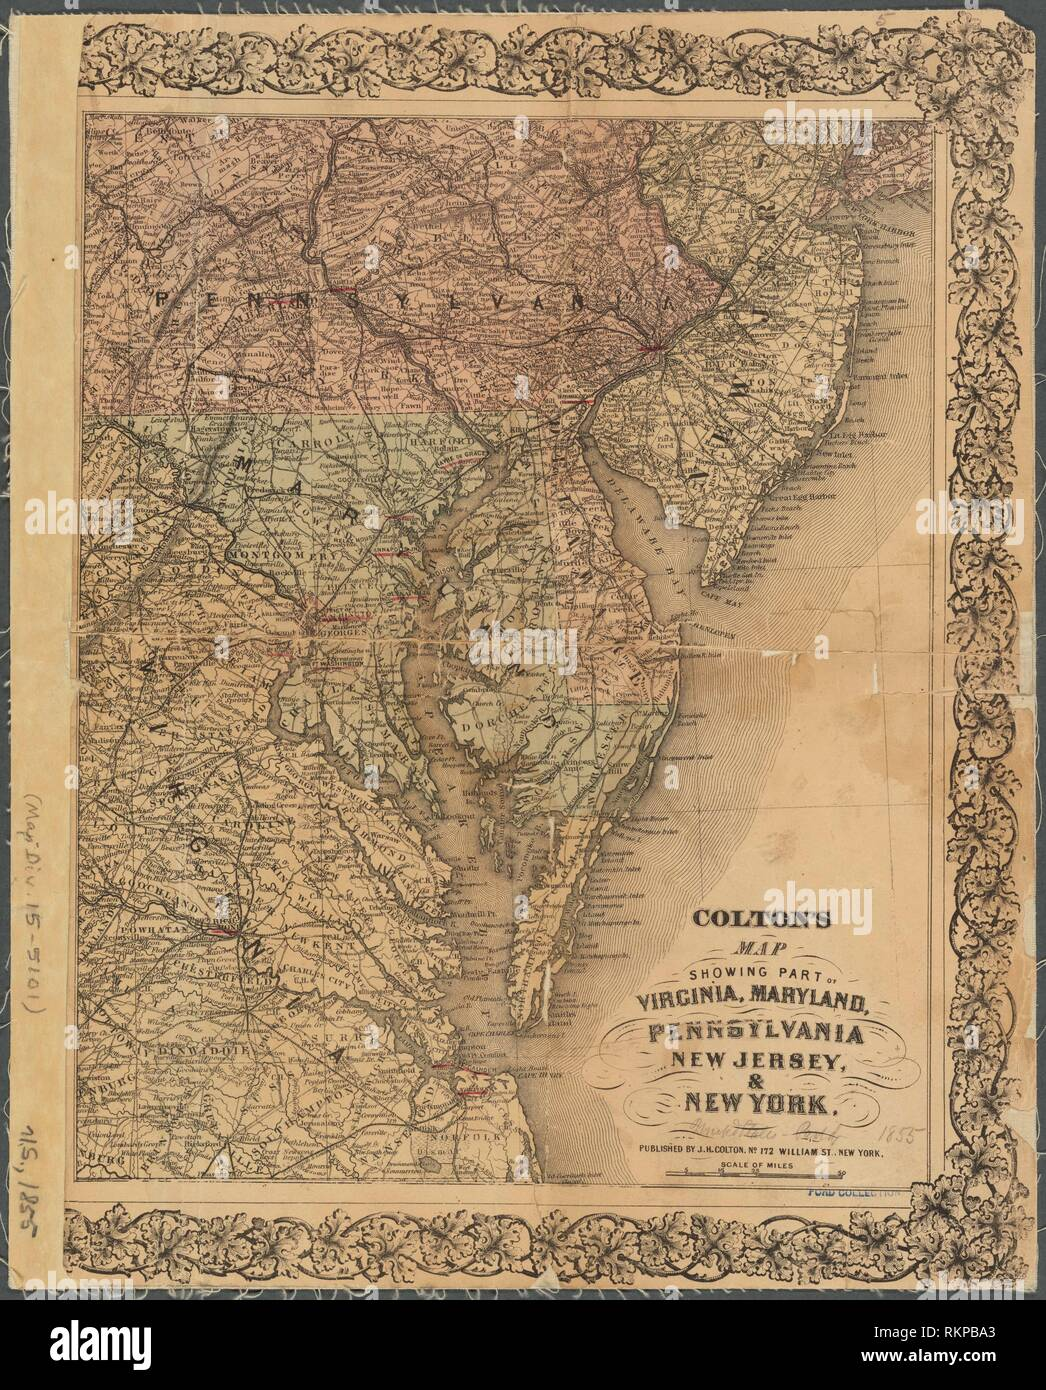 Map Of New York In 1800.Colton S Map Showing Part Of Virginia Maryland Pennsylvania New